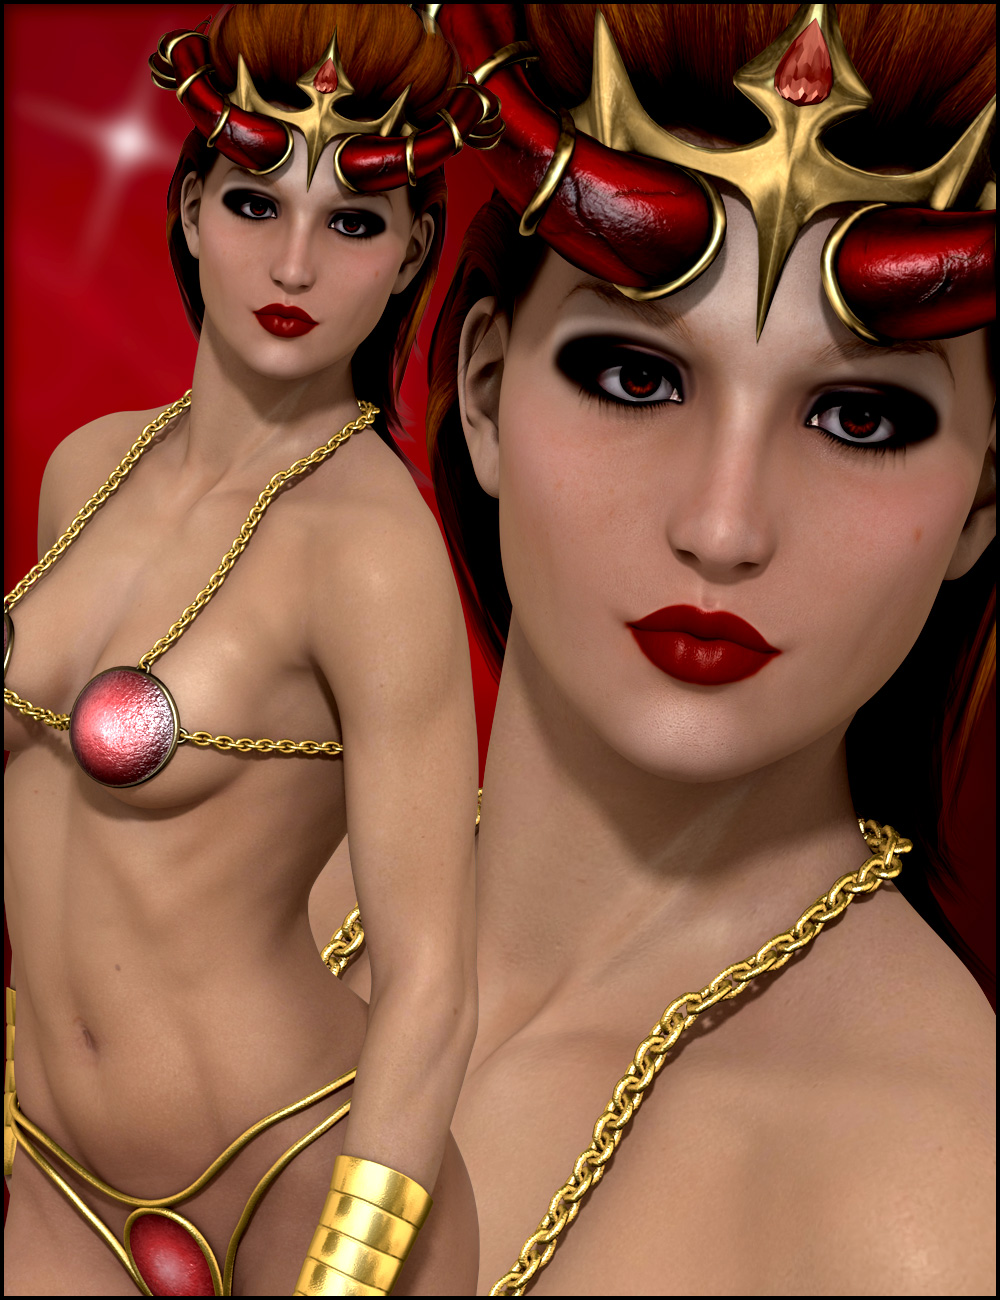 Gabriella for Gia by: ARTCollaborations, 3D Models by Daz 3D